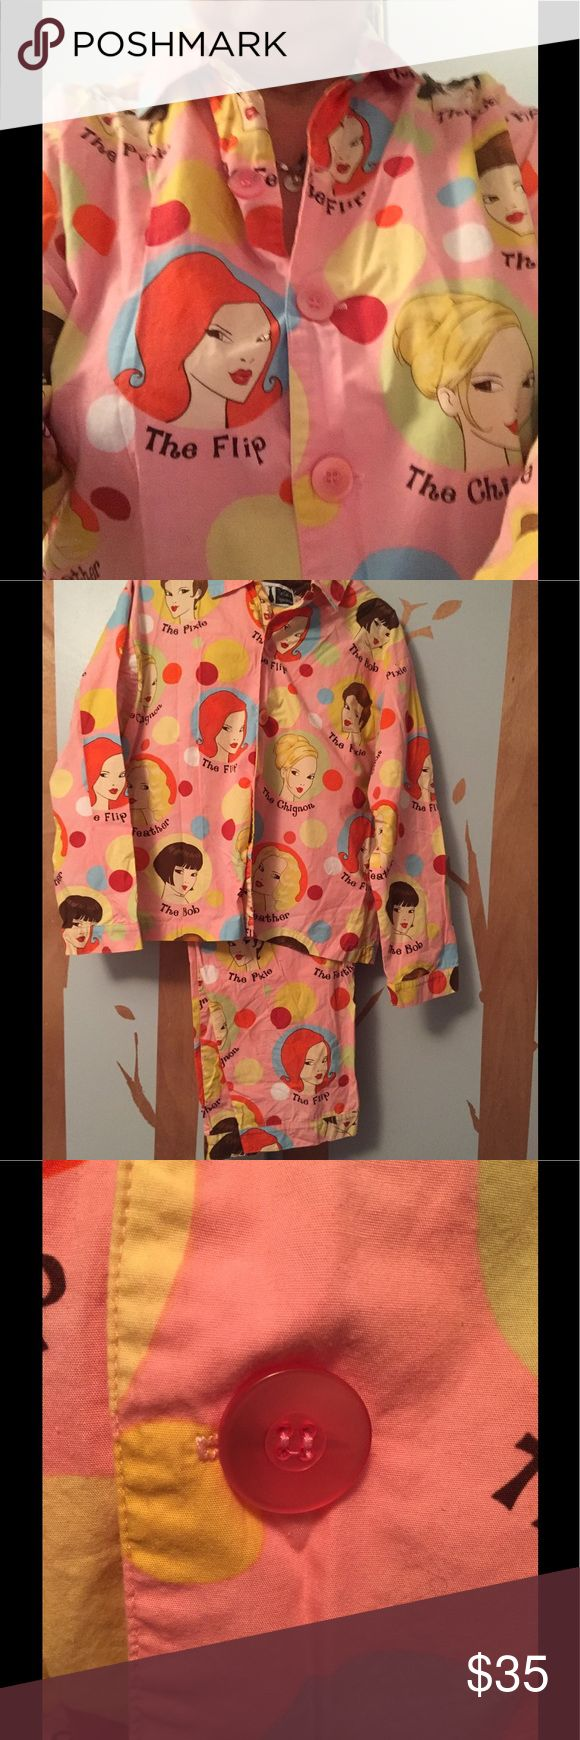 The cat's pajamas Ladies pajamas The cutest grownup pajamas I have ever seen Retro appeal in 100% cotton long pants and buttonup long sleeve top pictures of different styles of hairdos size medium I wear size 18 and the fit me but I like my pjs a bit looser My loss someone else's gain the cat's pajamas Intimates & Sleepwear Pajamas